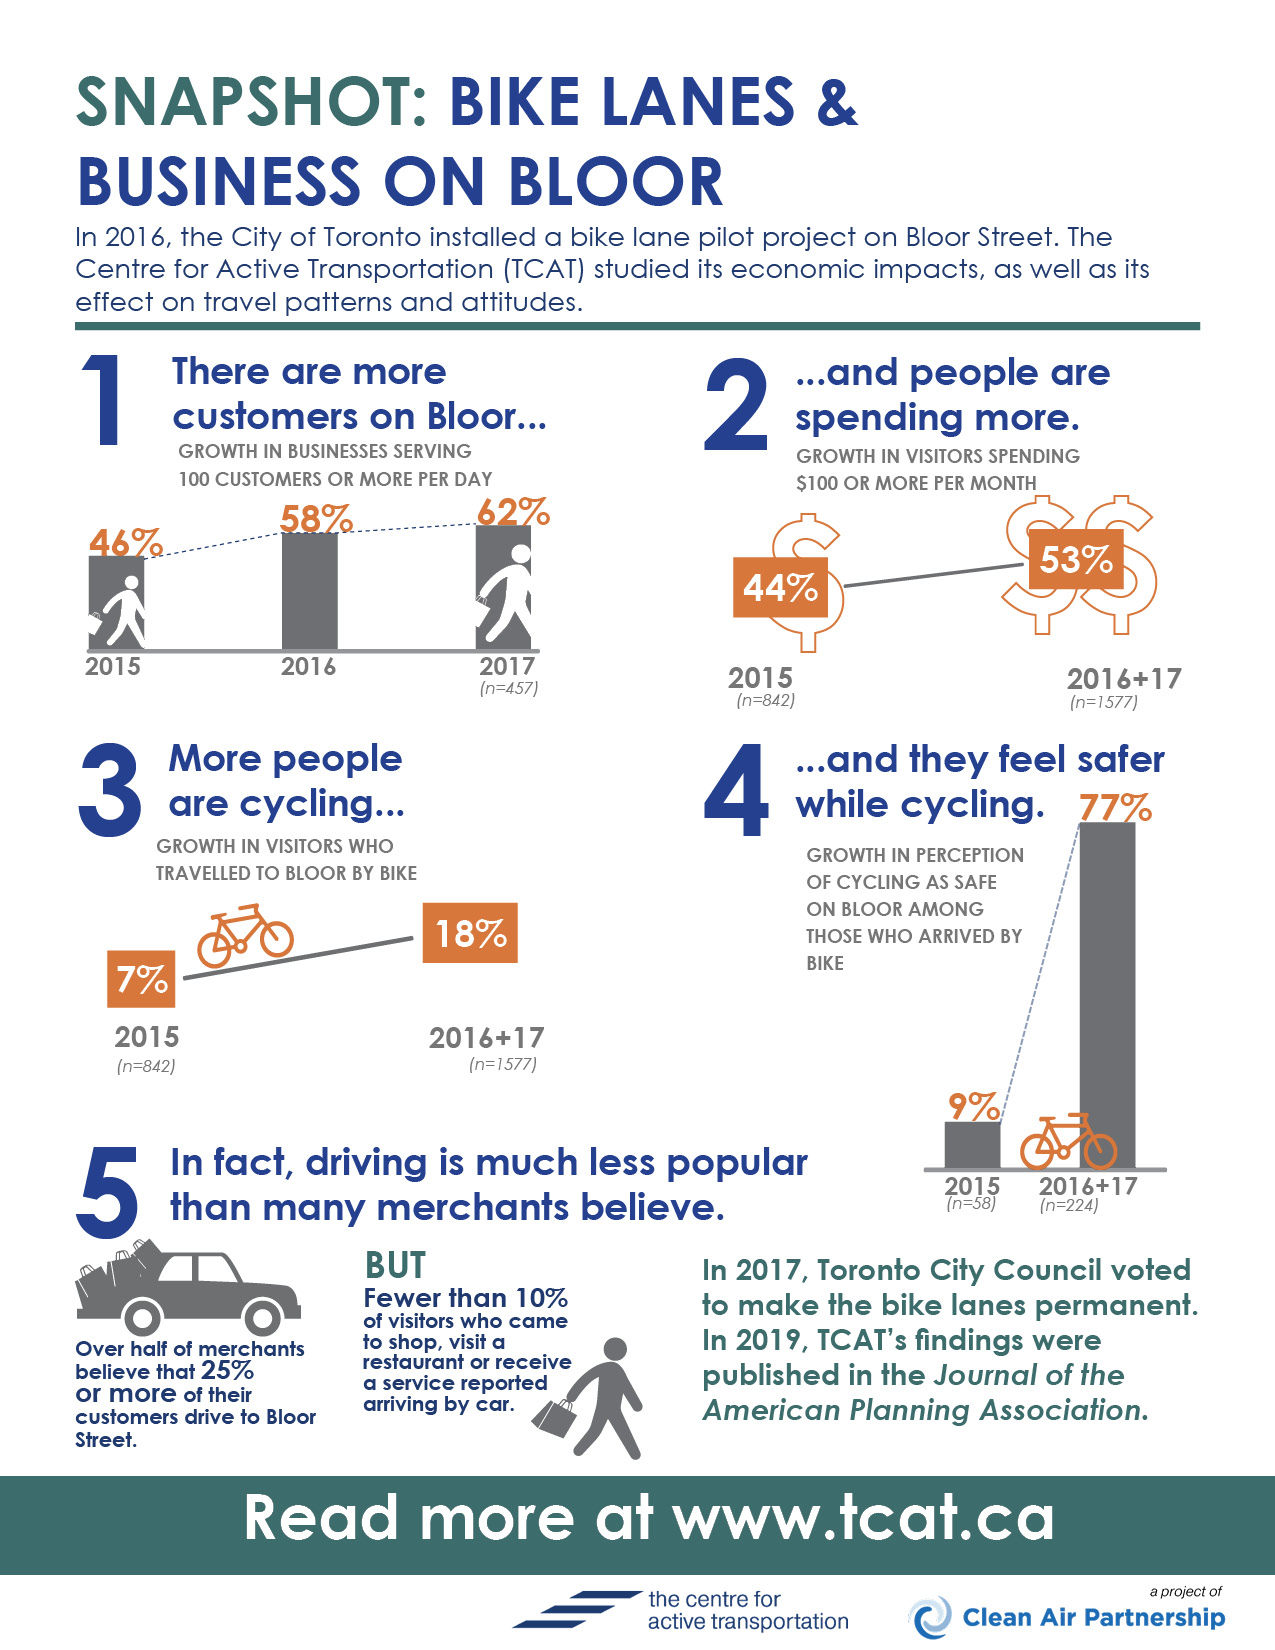 One page snapshot of study results: there are more customers on Bloor, and they're spending more money. There are also more people cycling and they feel safer while cycling. In fact, driving is much less popular than most merchants believe.